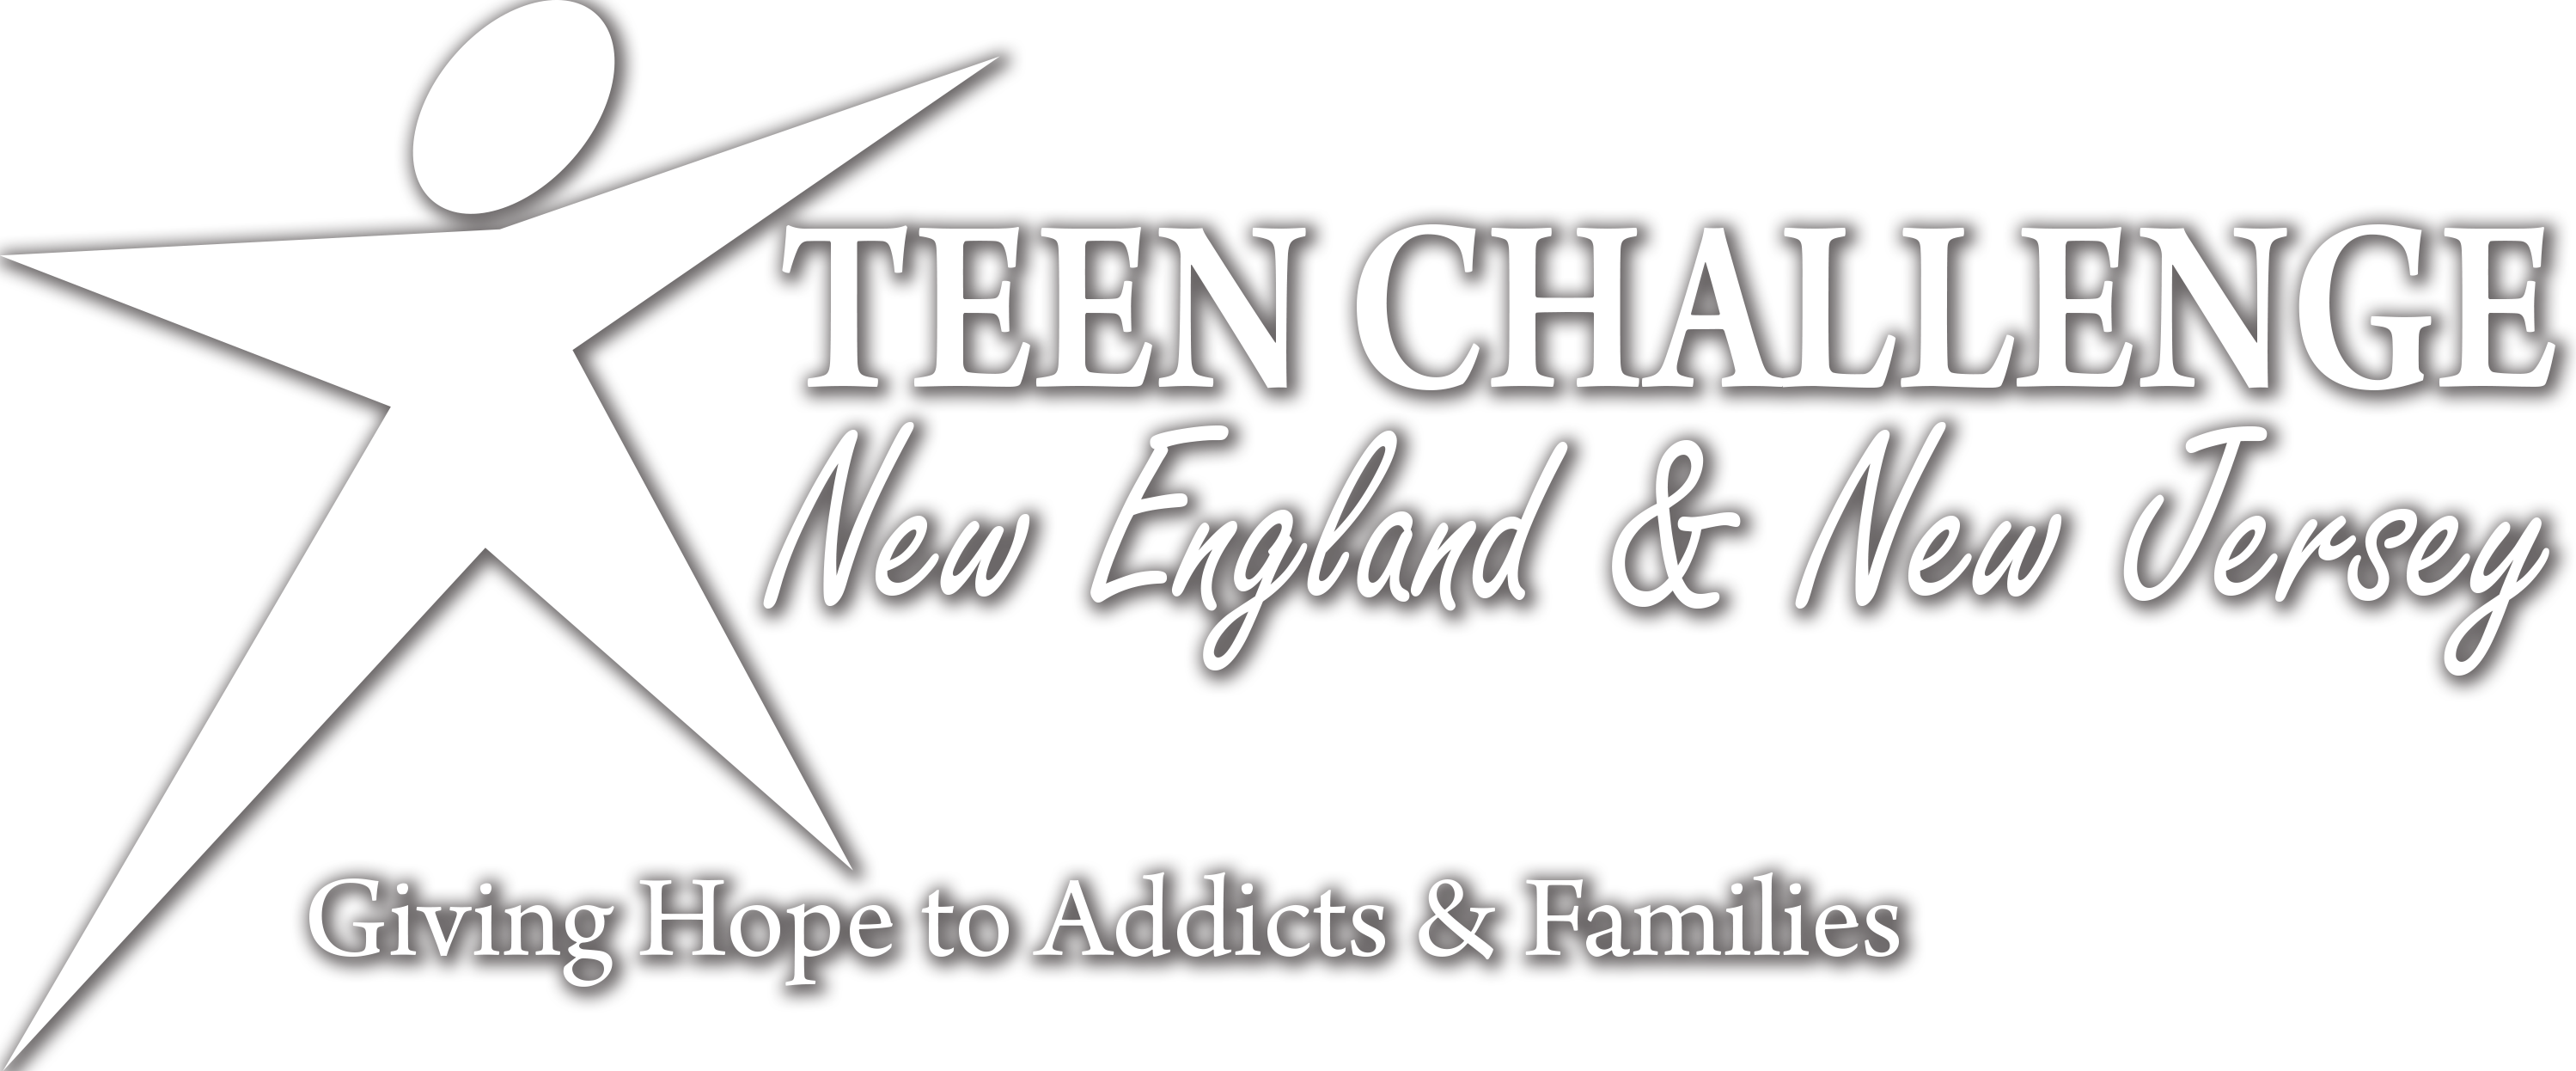 founded-teen-challenge-in-the